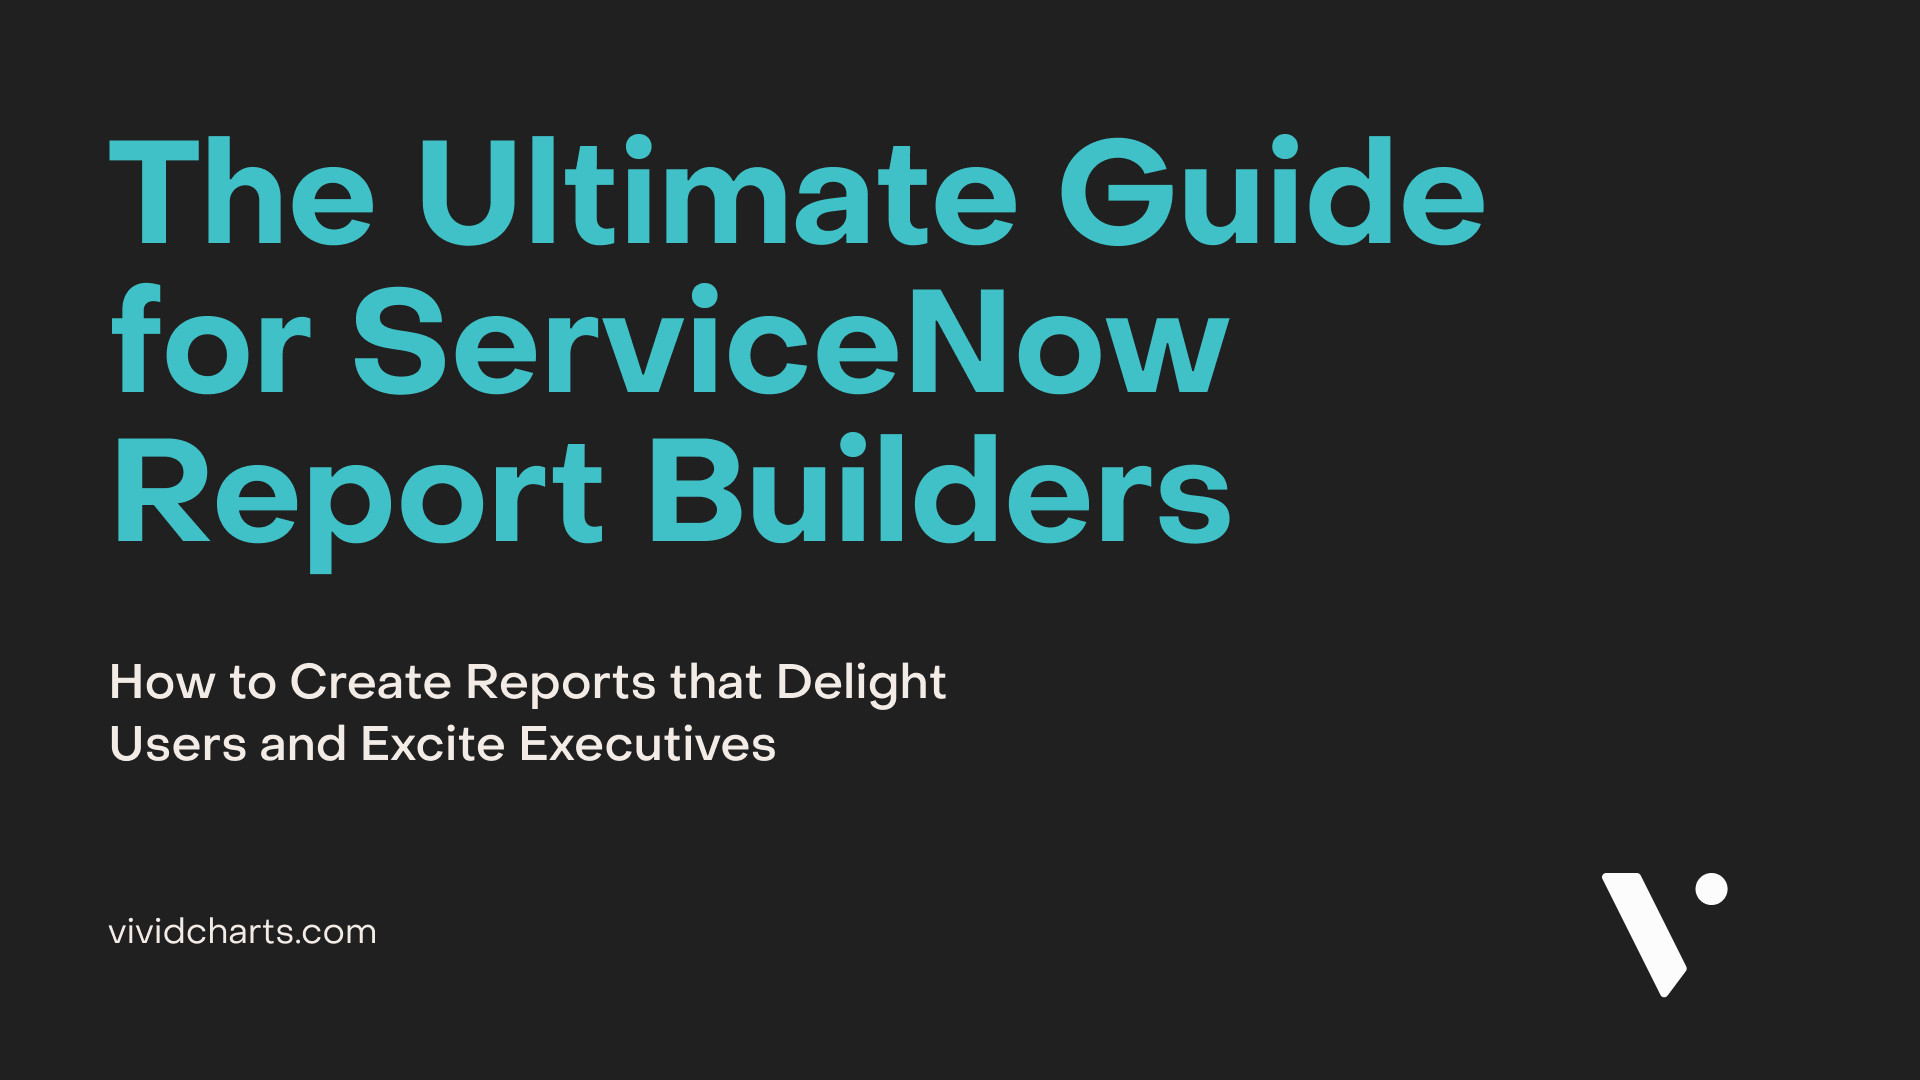 How to Create Reports That Delight Users and Excite Executives